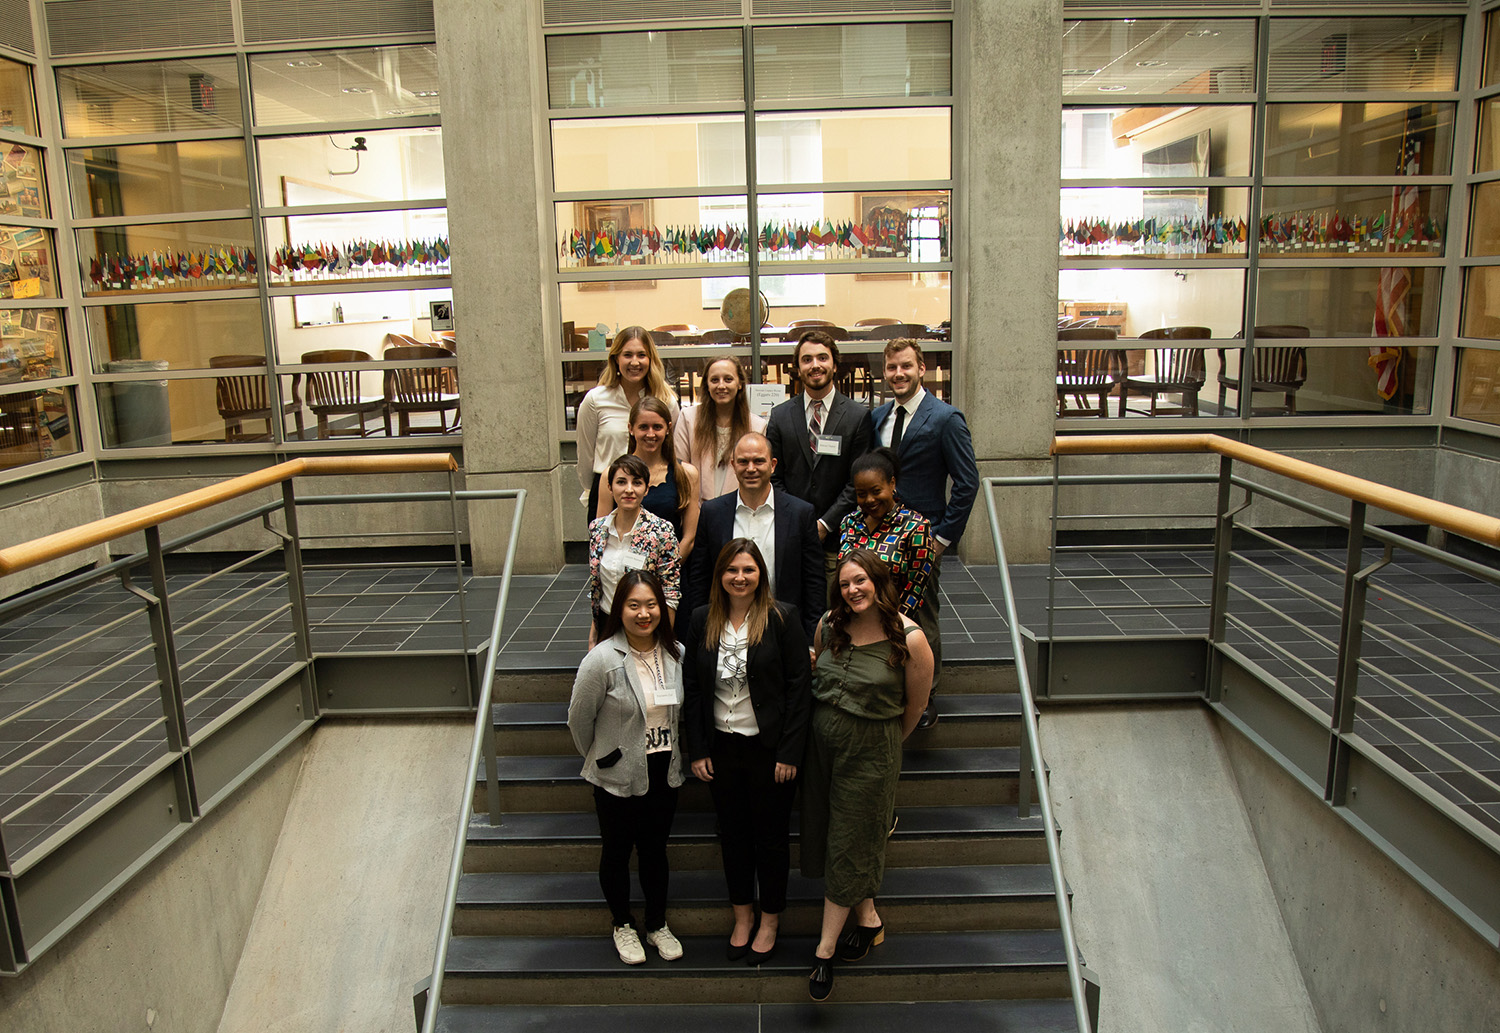 Ben Rhodes poses with Public Diplomacy students for group photo